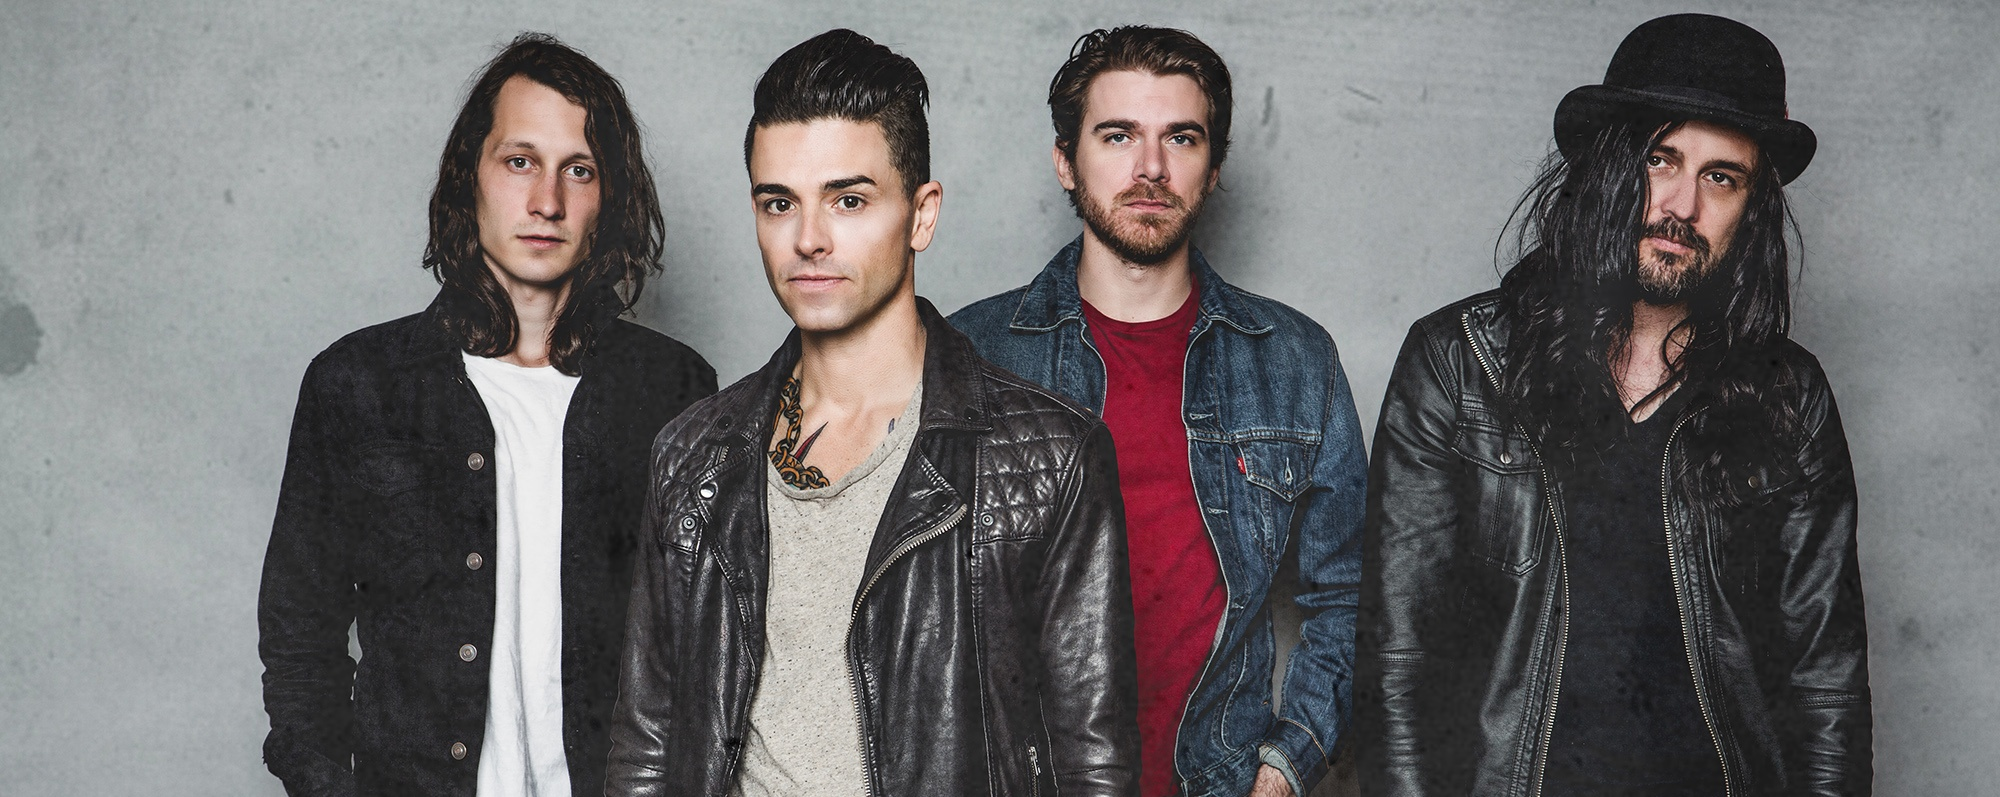 Dashboard Confessional - Live in Singapore!